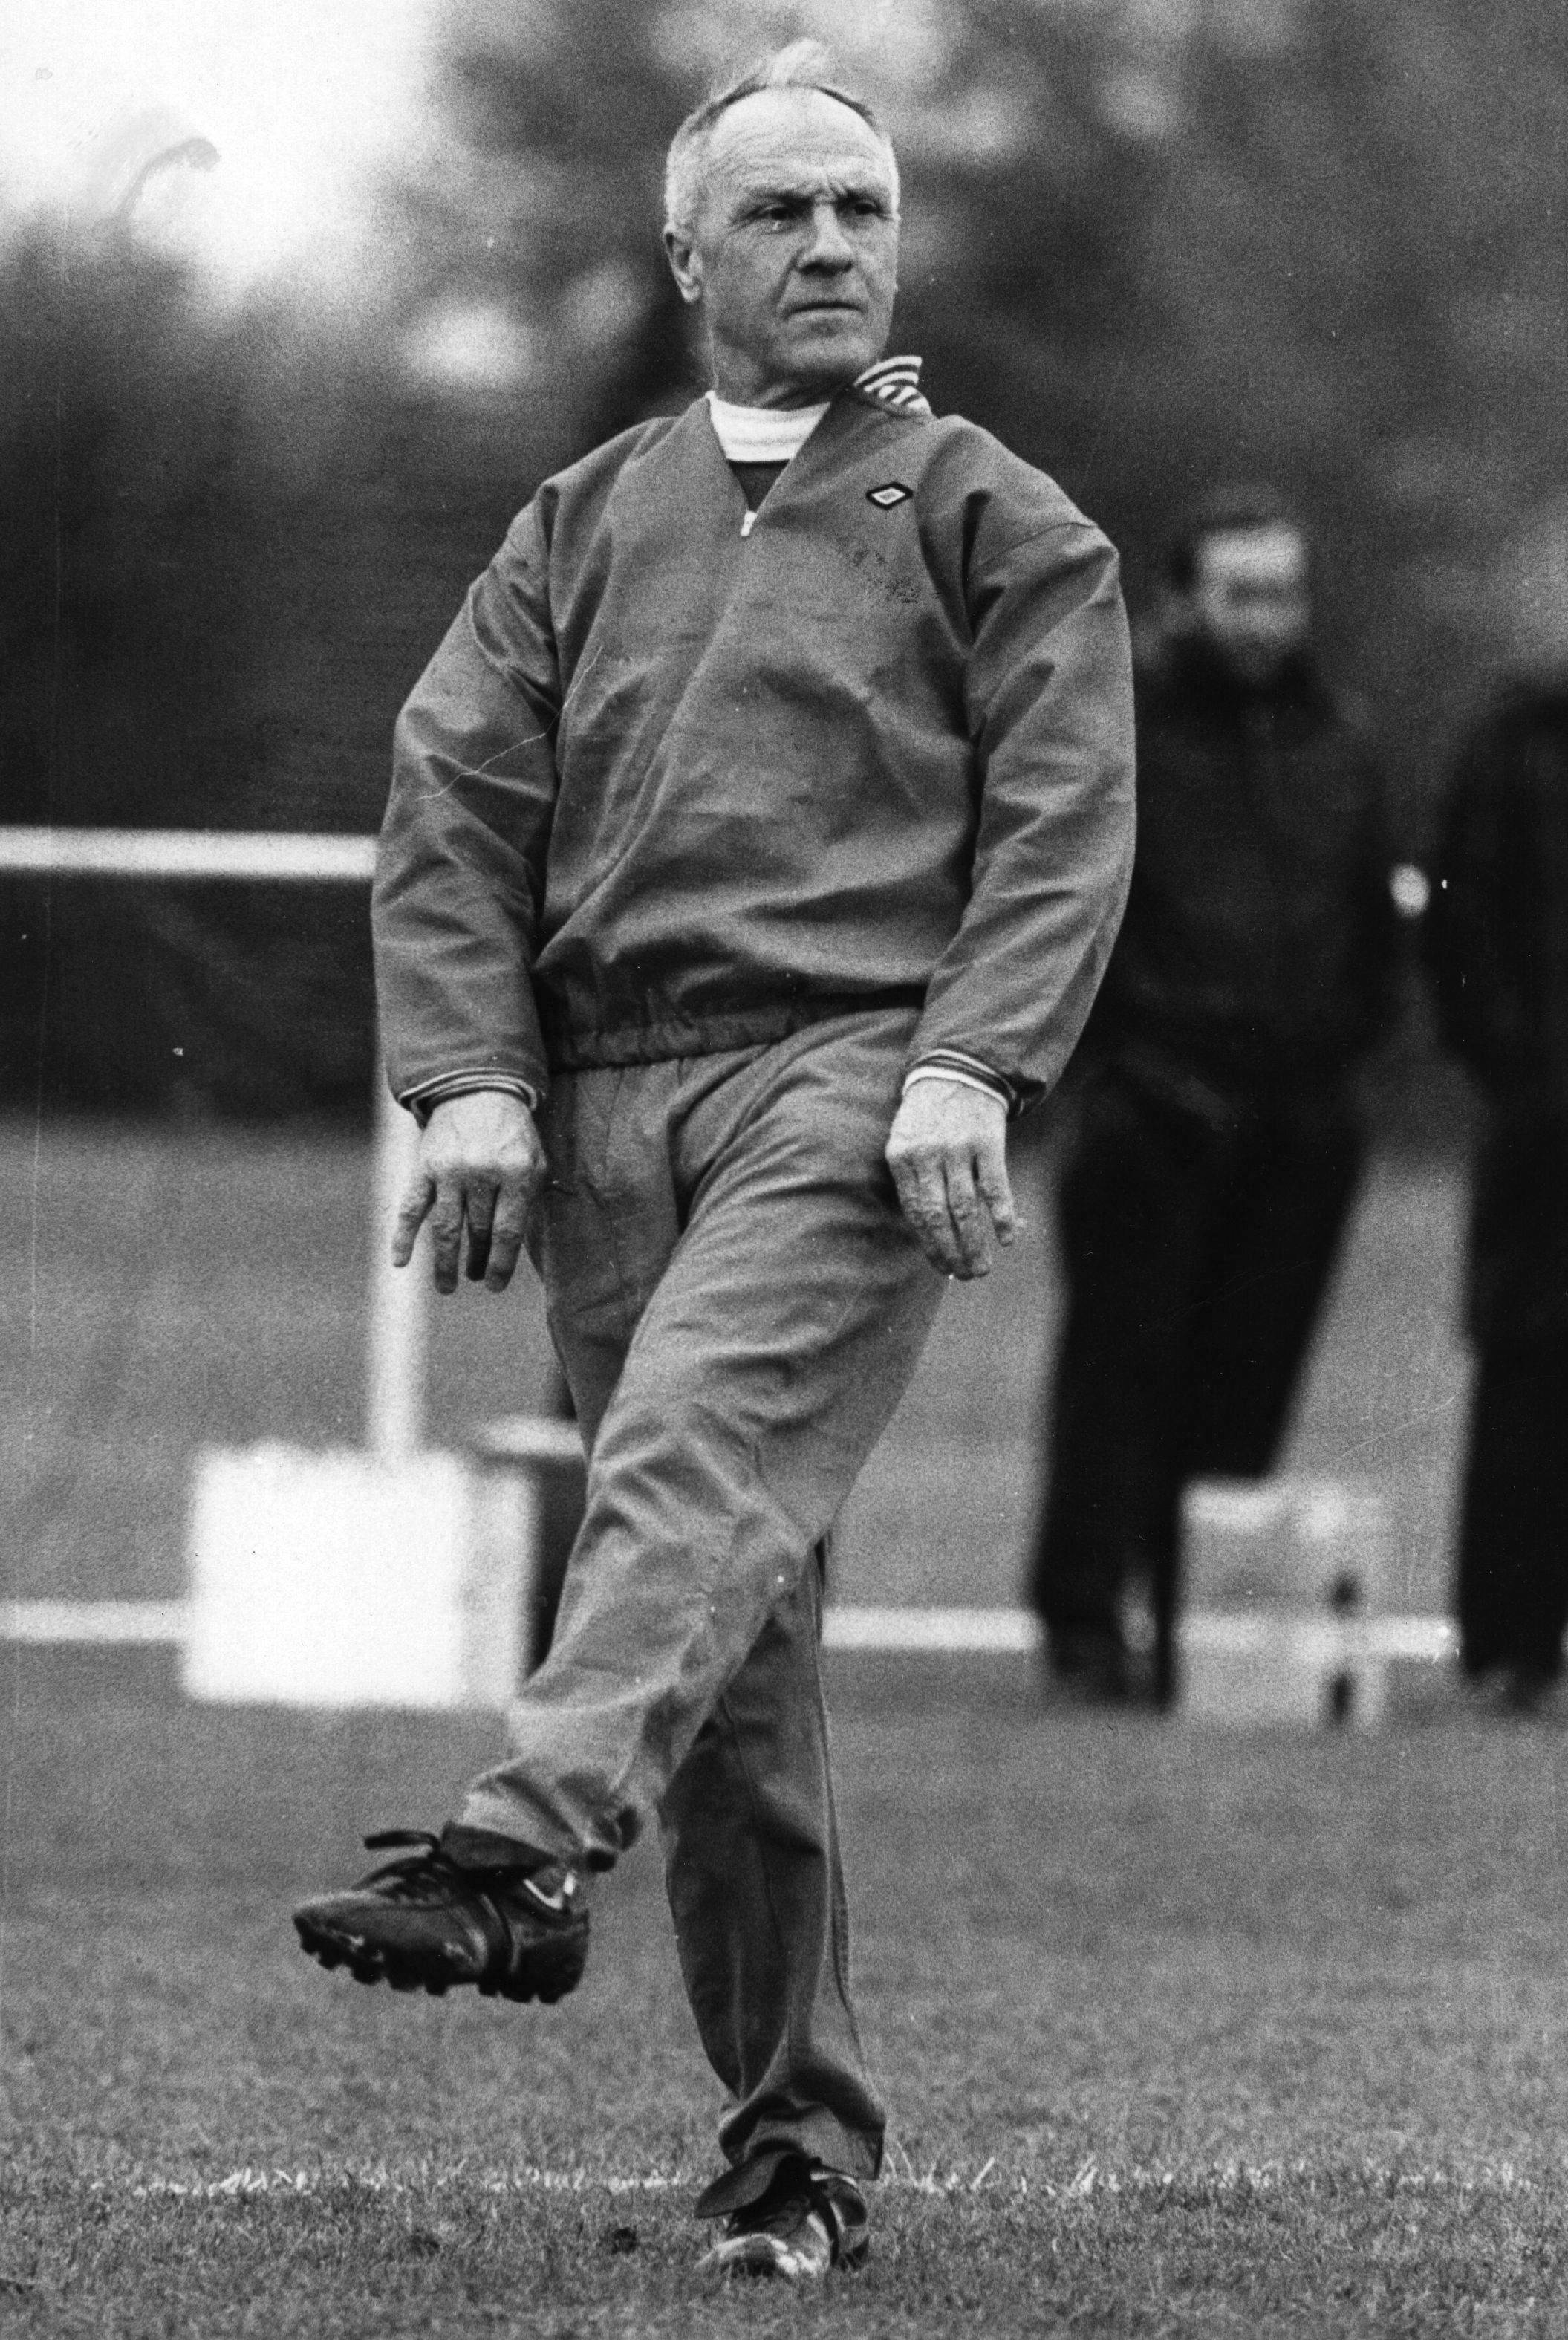 """Bill Shankly practices his """"Wembley Walk."""" The Scottish football player and former manager of Liverpool FC was an instrumental figure in Liverpool's football past and present. Photo by Evening Standard/Getty Images"""